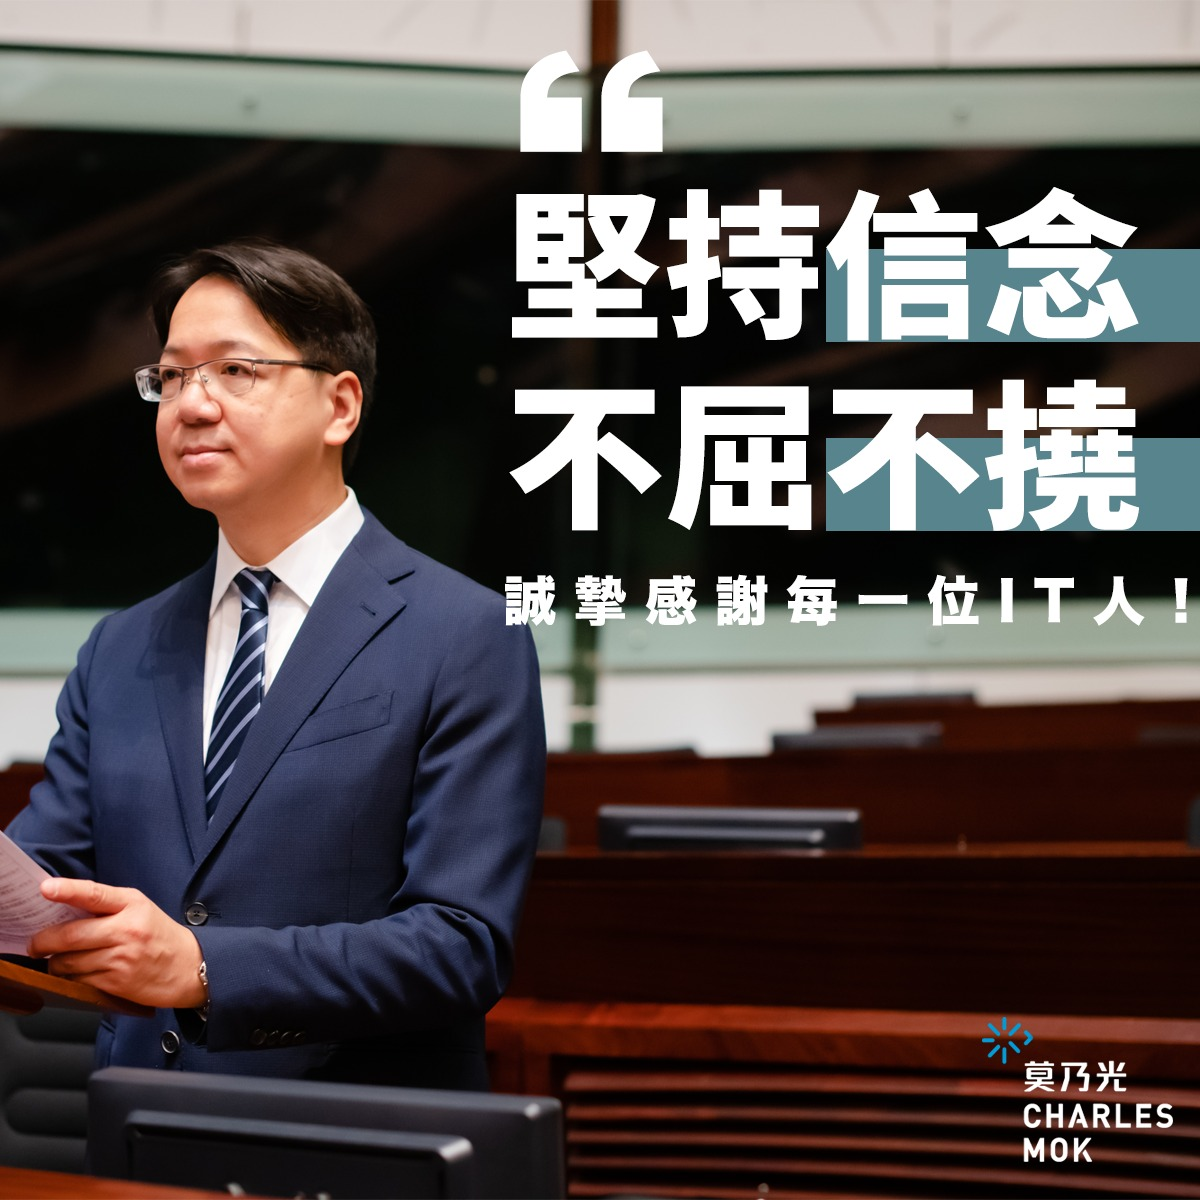 link to [Press release] Hon Charles Mok urges the public to take precautions against the WannaCry ransomware attack (Chinese version only)